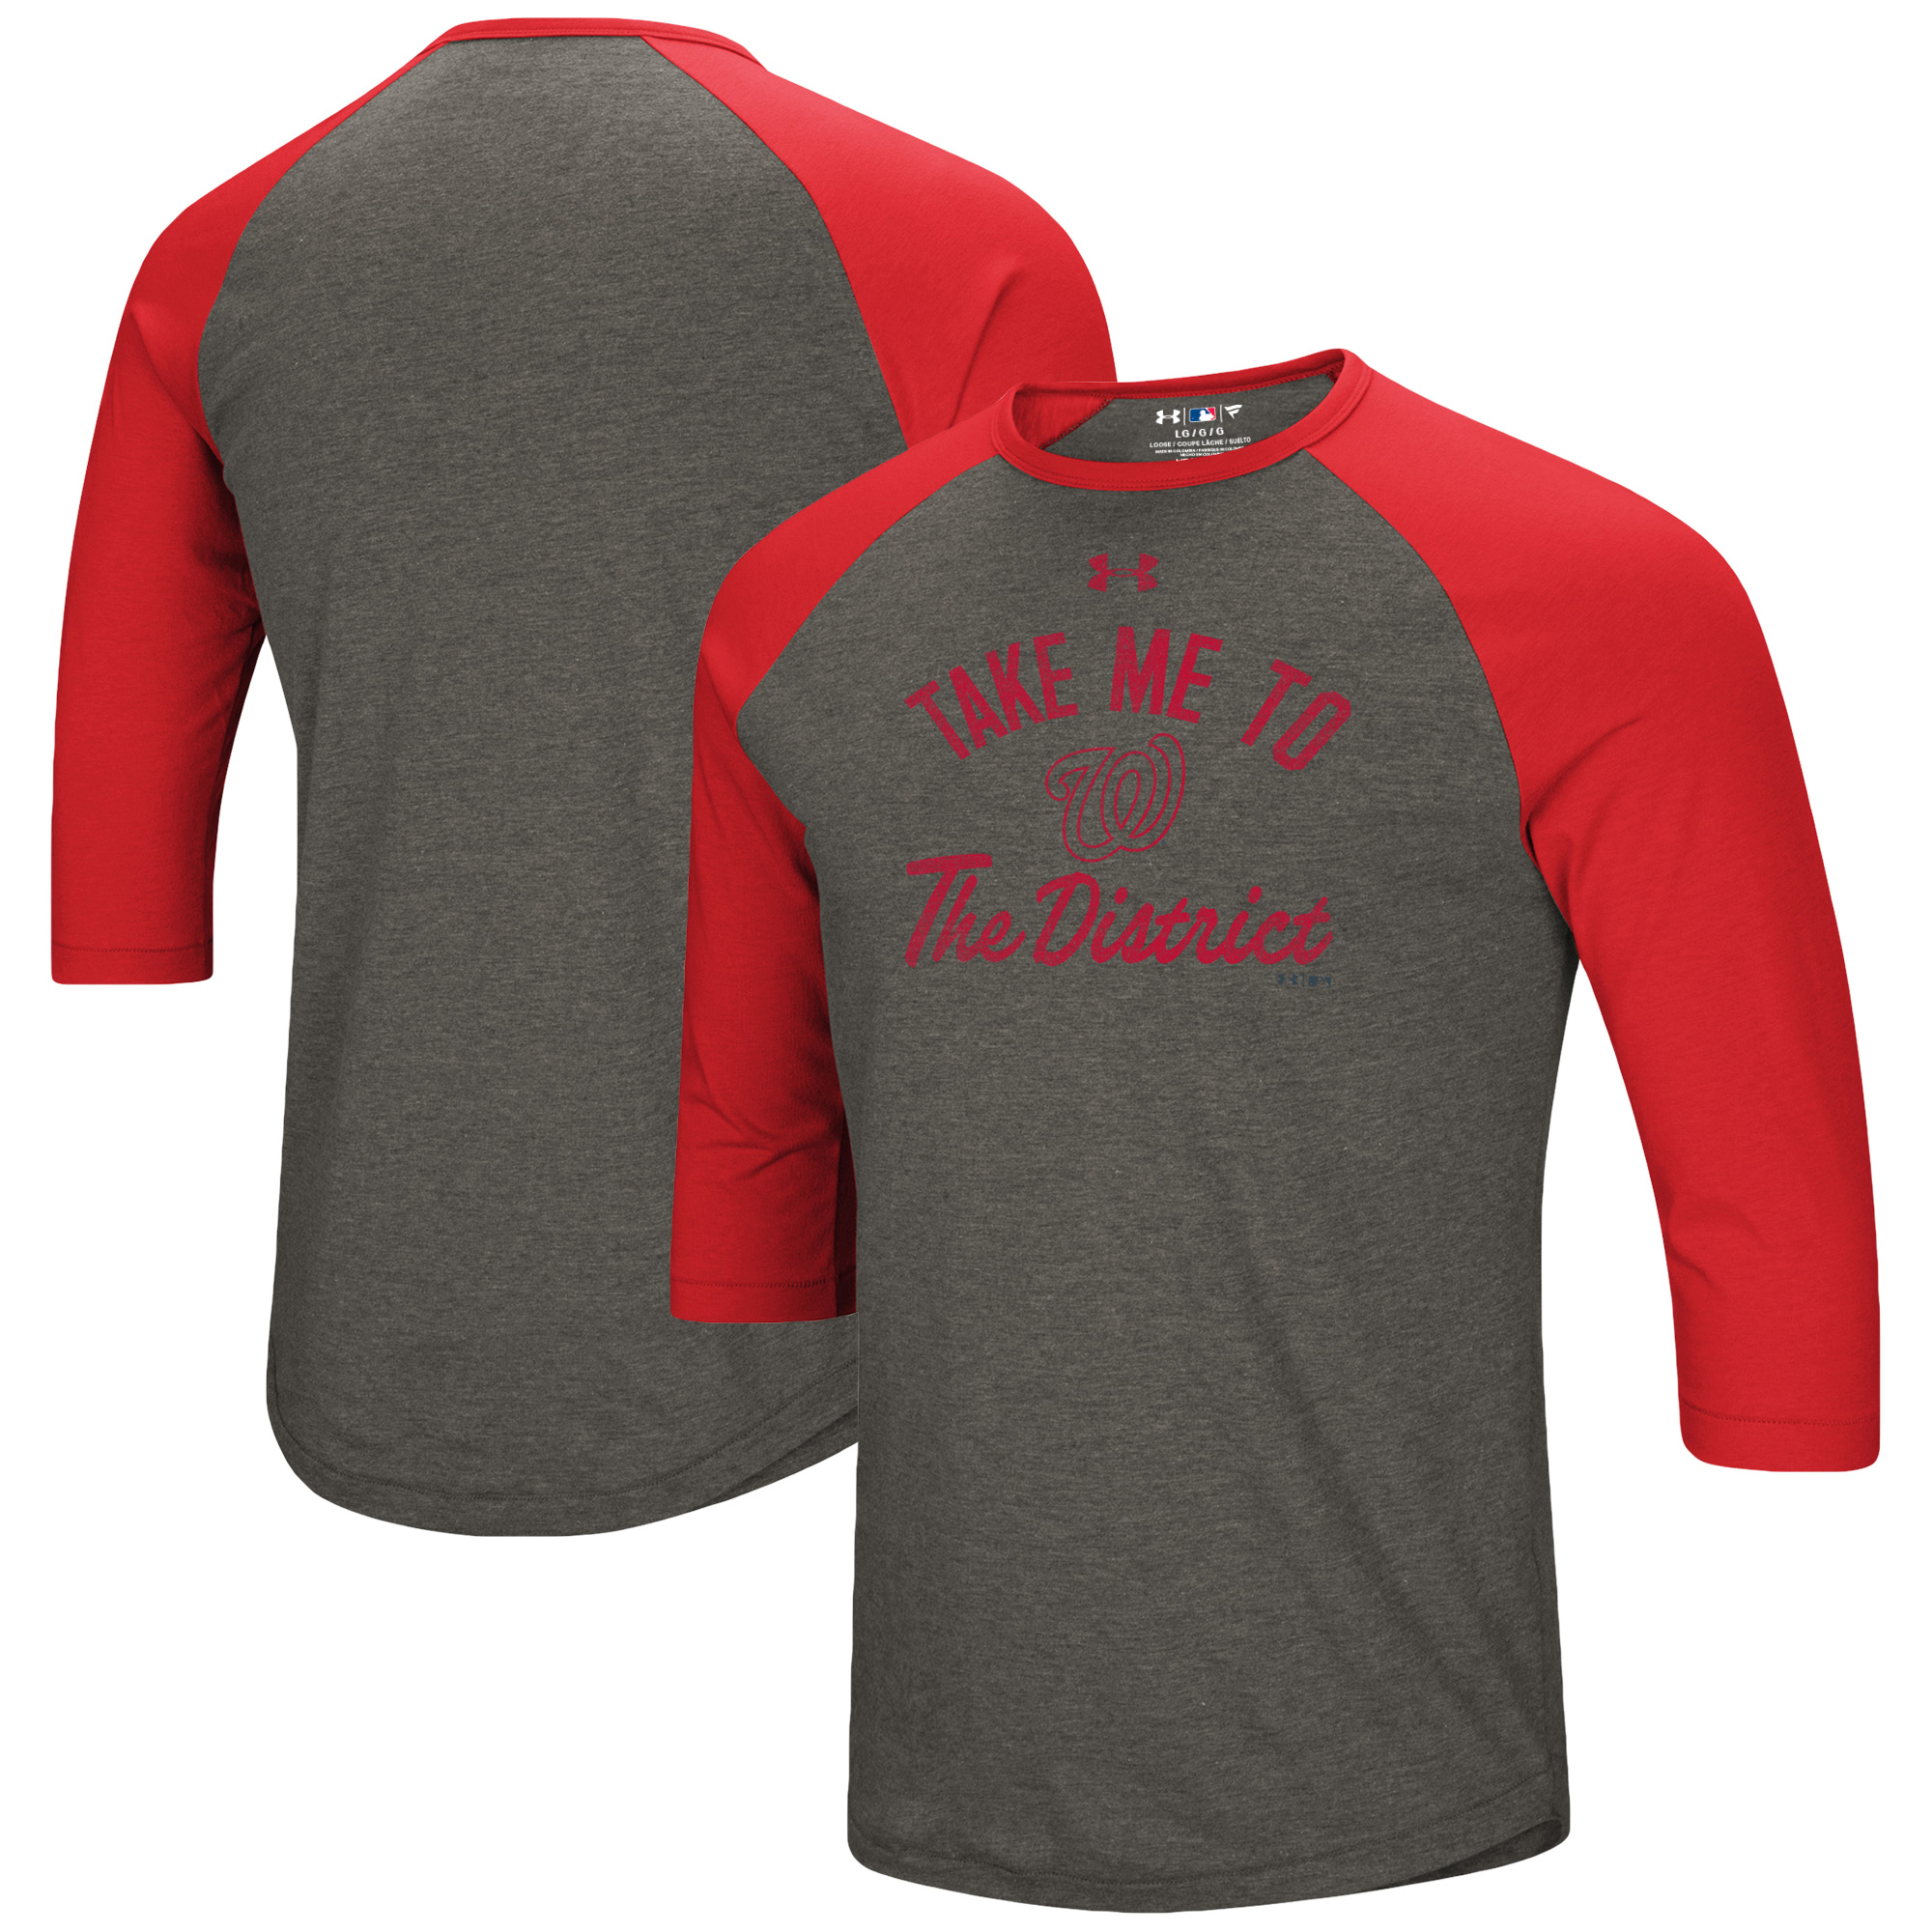 Washington Nationals Under Armour Heritage Performance Tri-Blend Raglan 3/4-Sleeve T-Shirt - Heathered Gray/Red